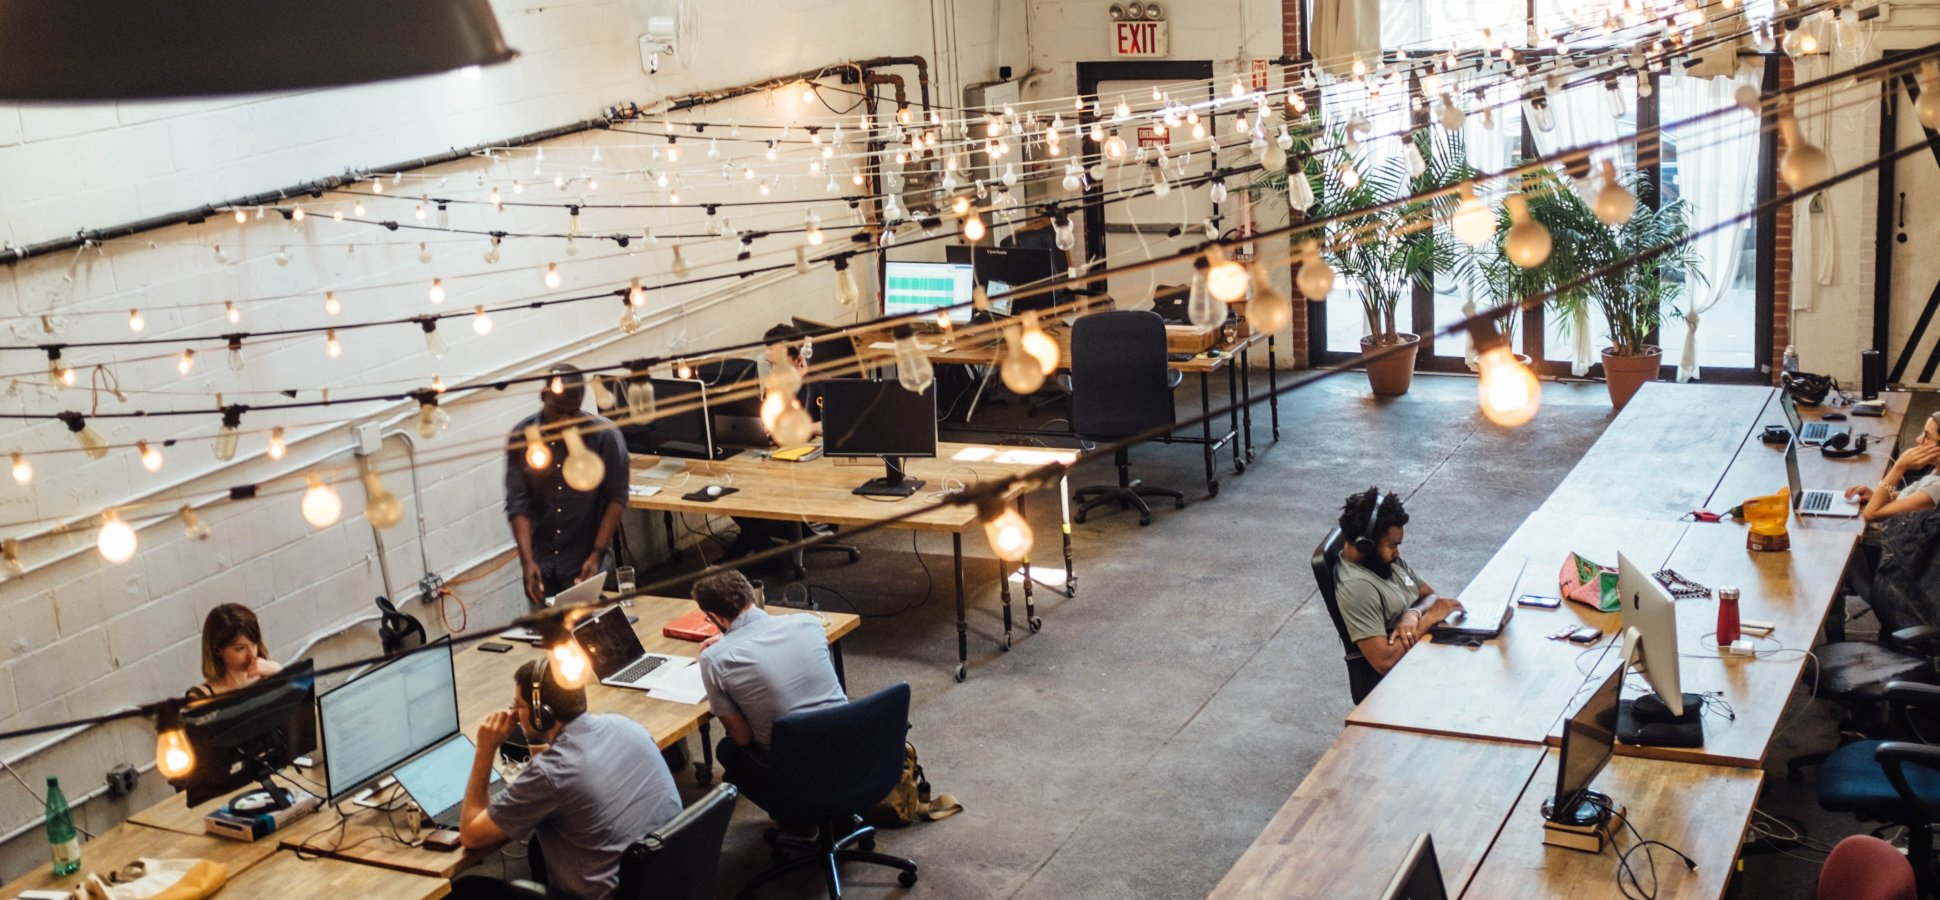 Aaptiv's Founder Started His Company in a Co-Working Space. Here's How to Know If You Can Do the Same